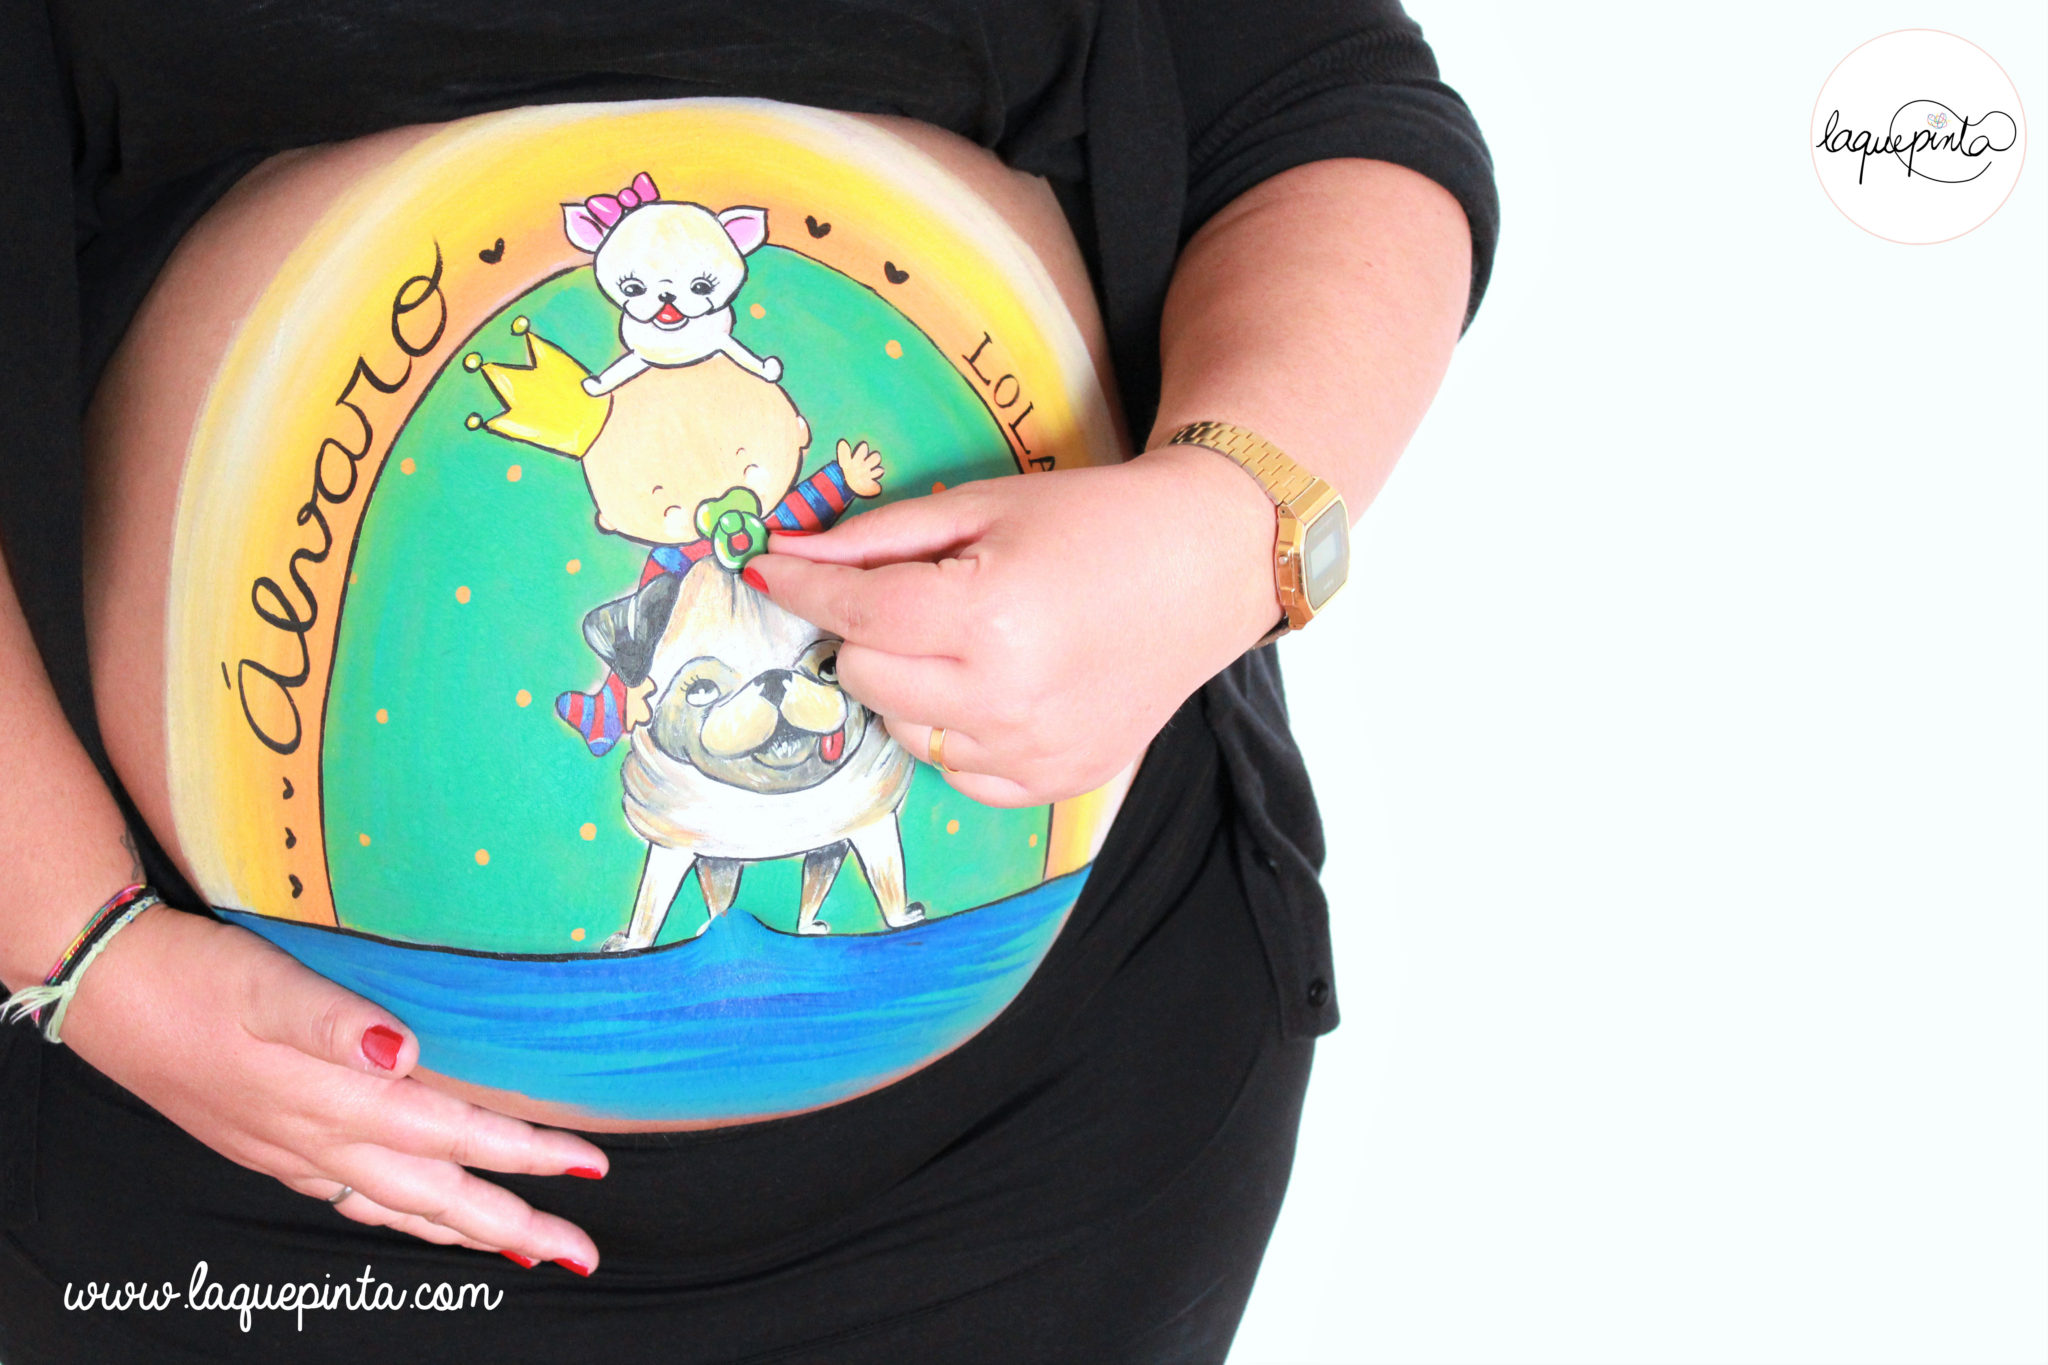 Belly painting con las princesas de la casa